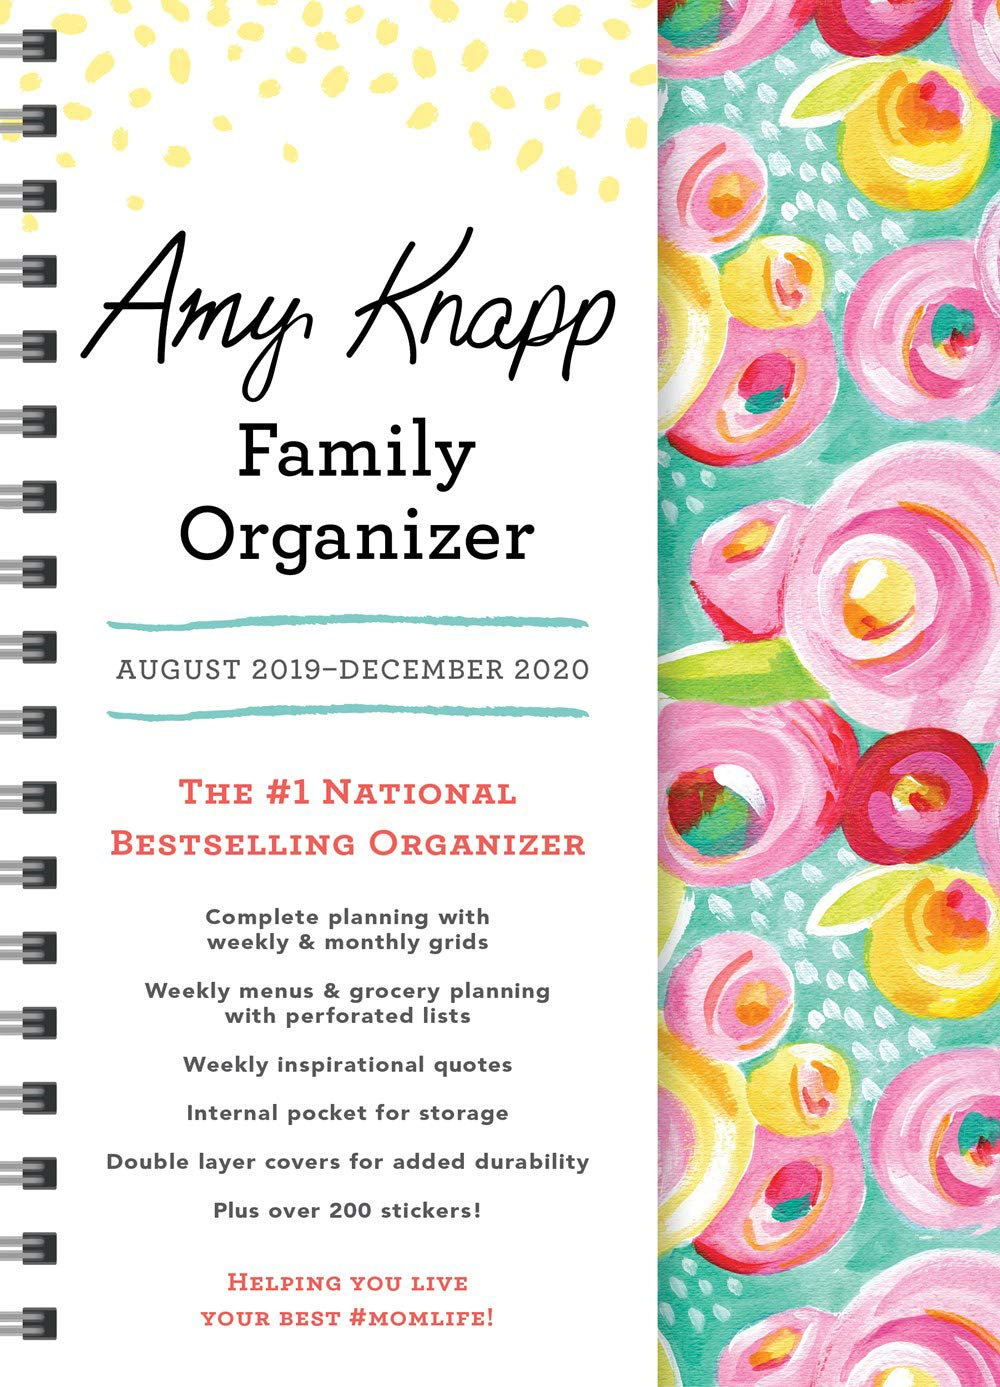 Best Internal Hard Drive 2020 2020 Amy Knapp's Family Organizer: August 2019 December 2020: Amy